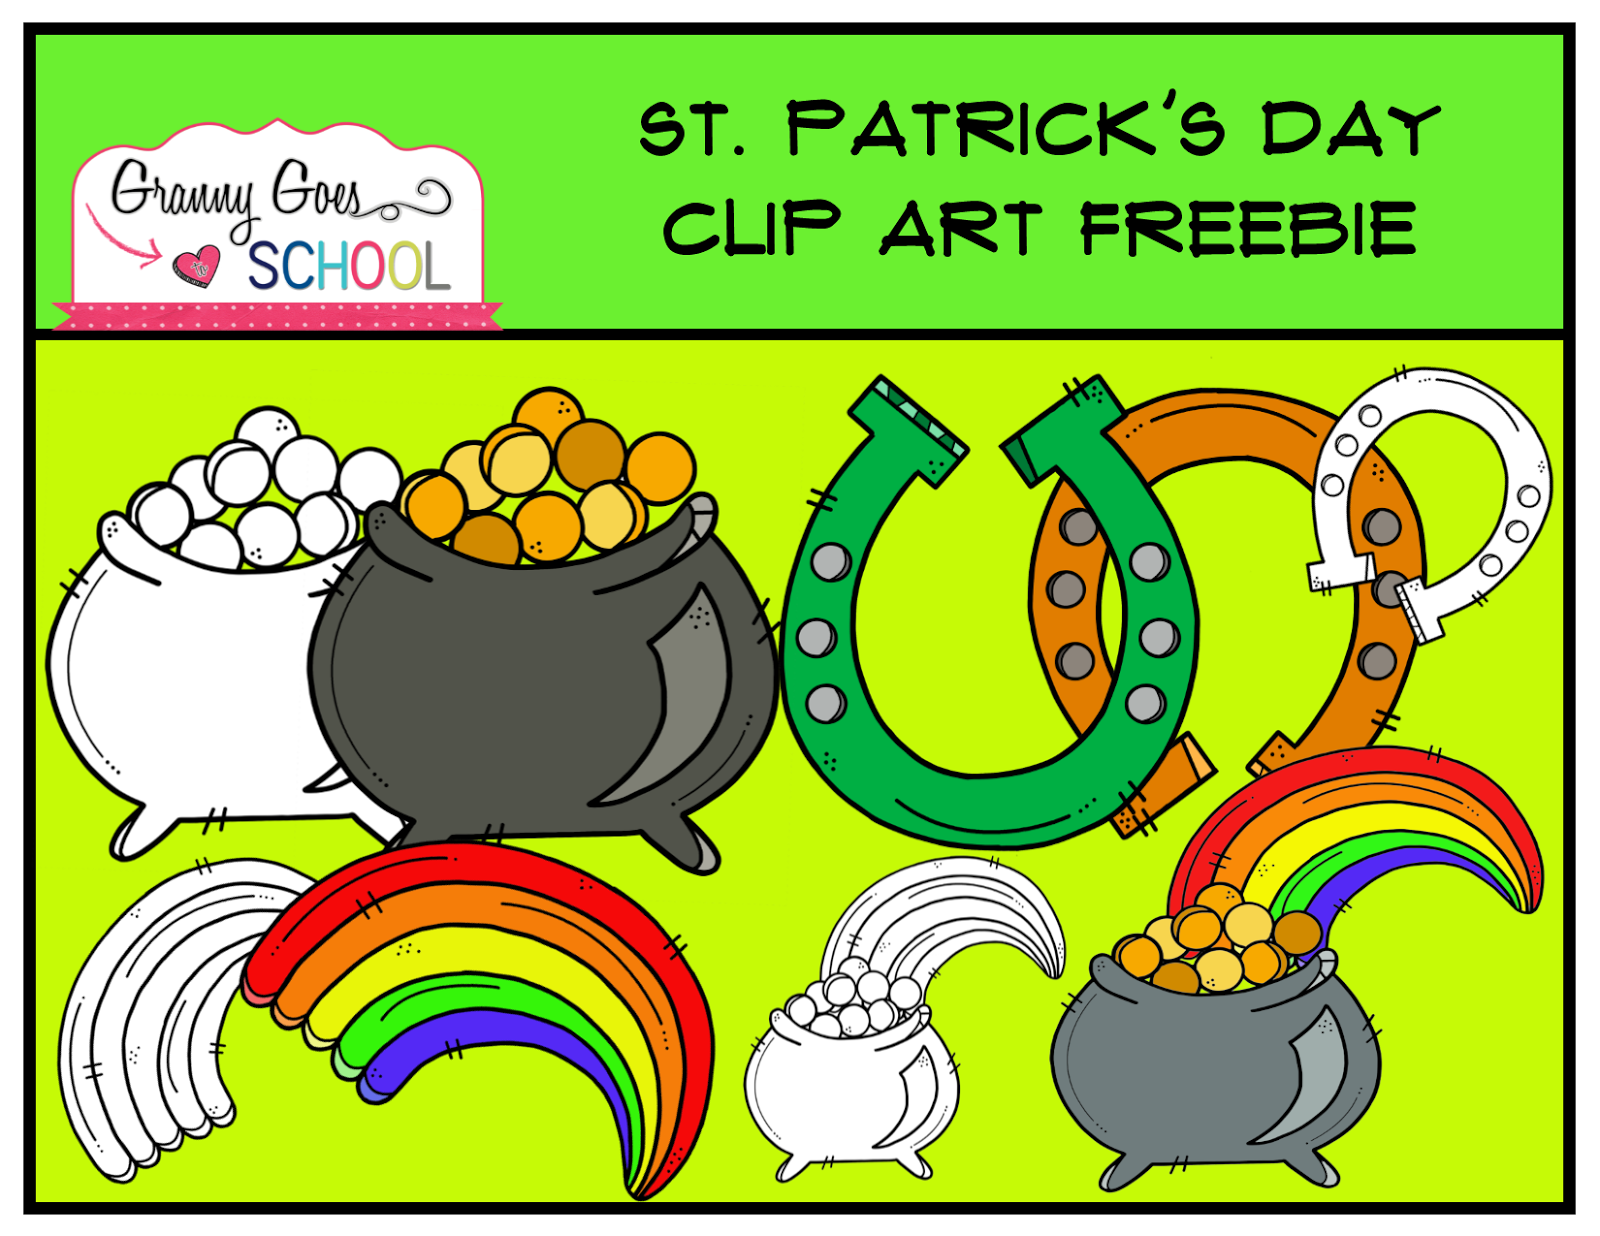 https://www.teacherspayteachers.com/Product/St-Patricks-Day-Clip-Art-FREEBIE-1742807